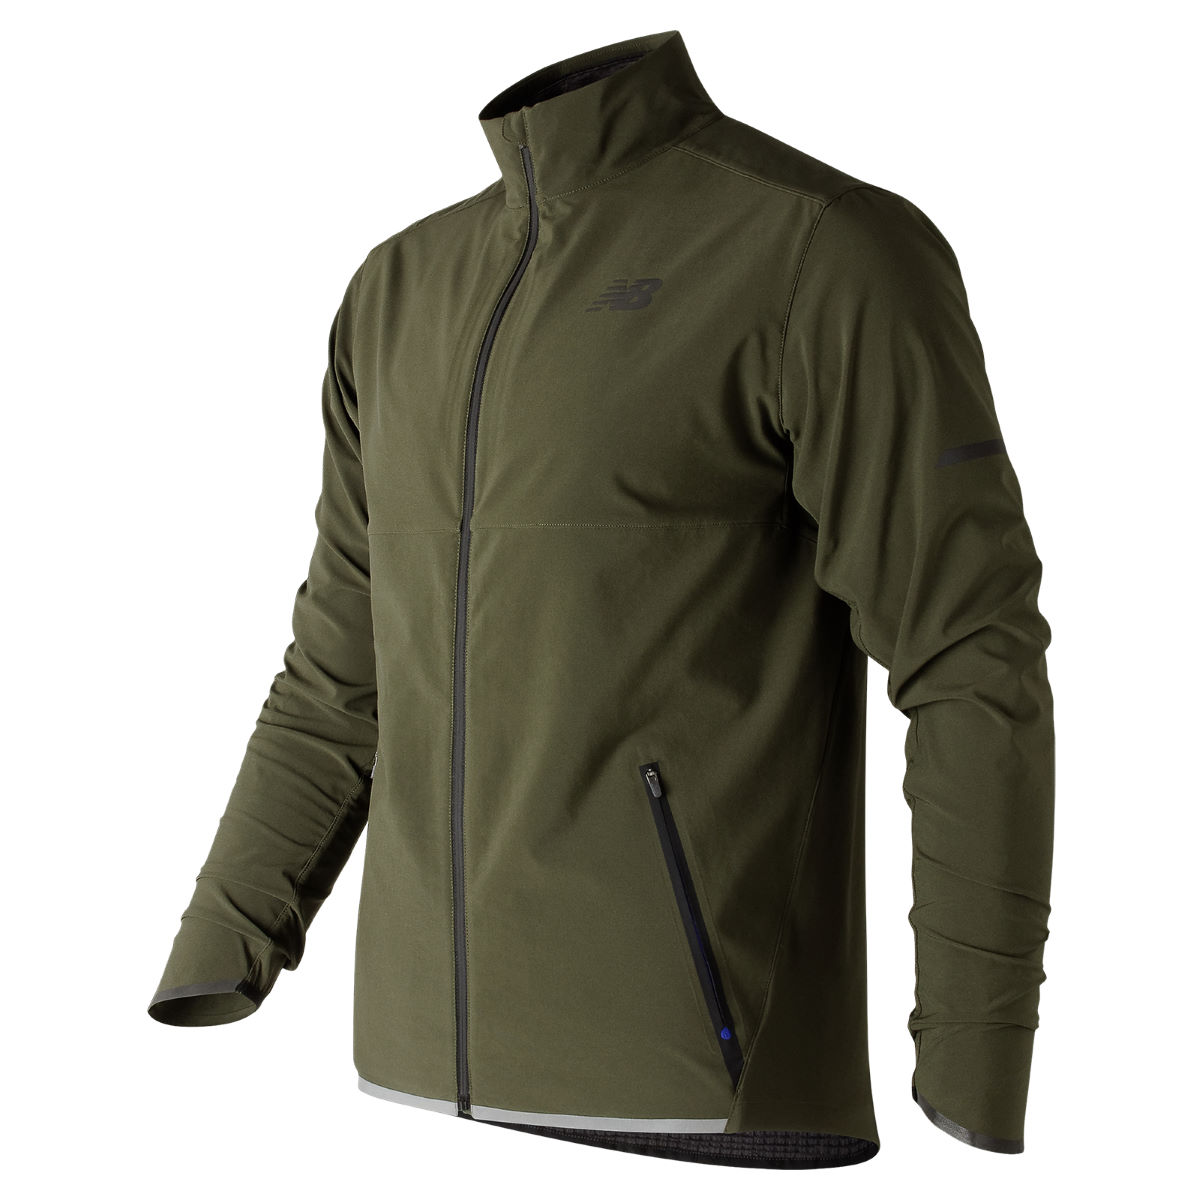 New Balance Precision 3-in-1 Run Jacket   Jackets